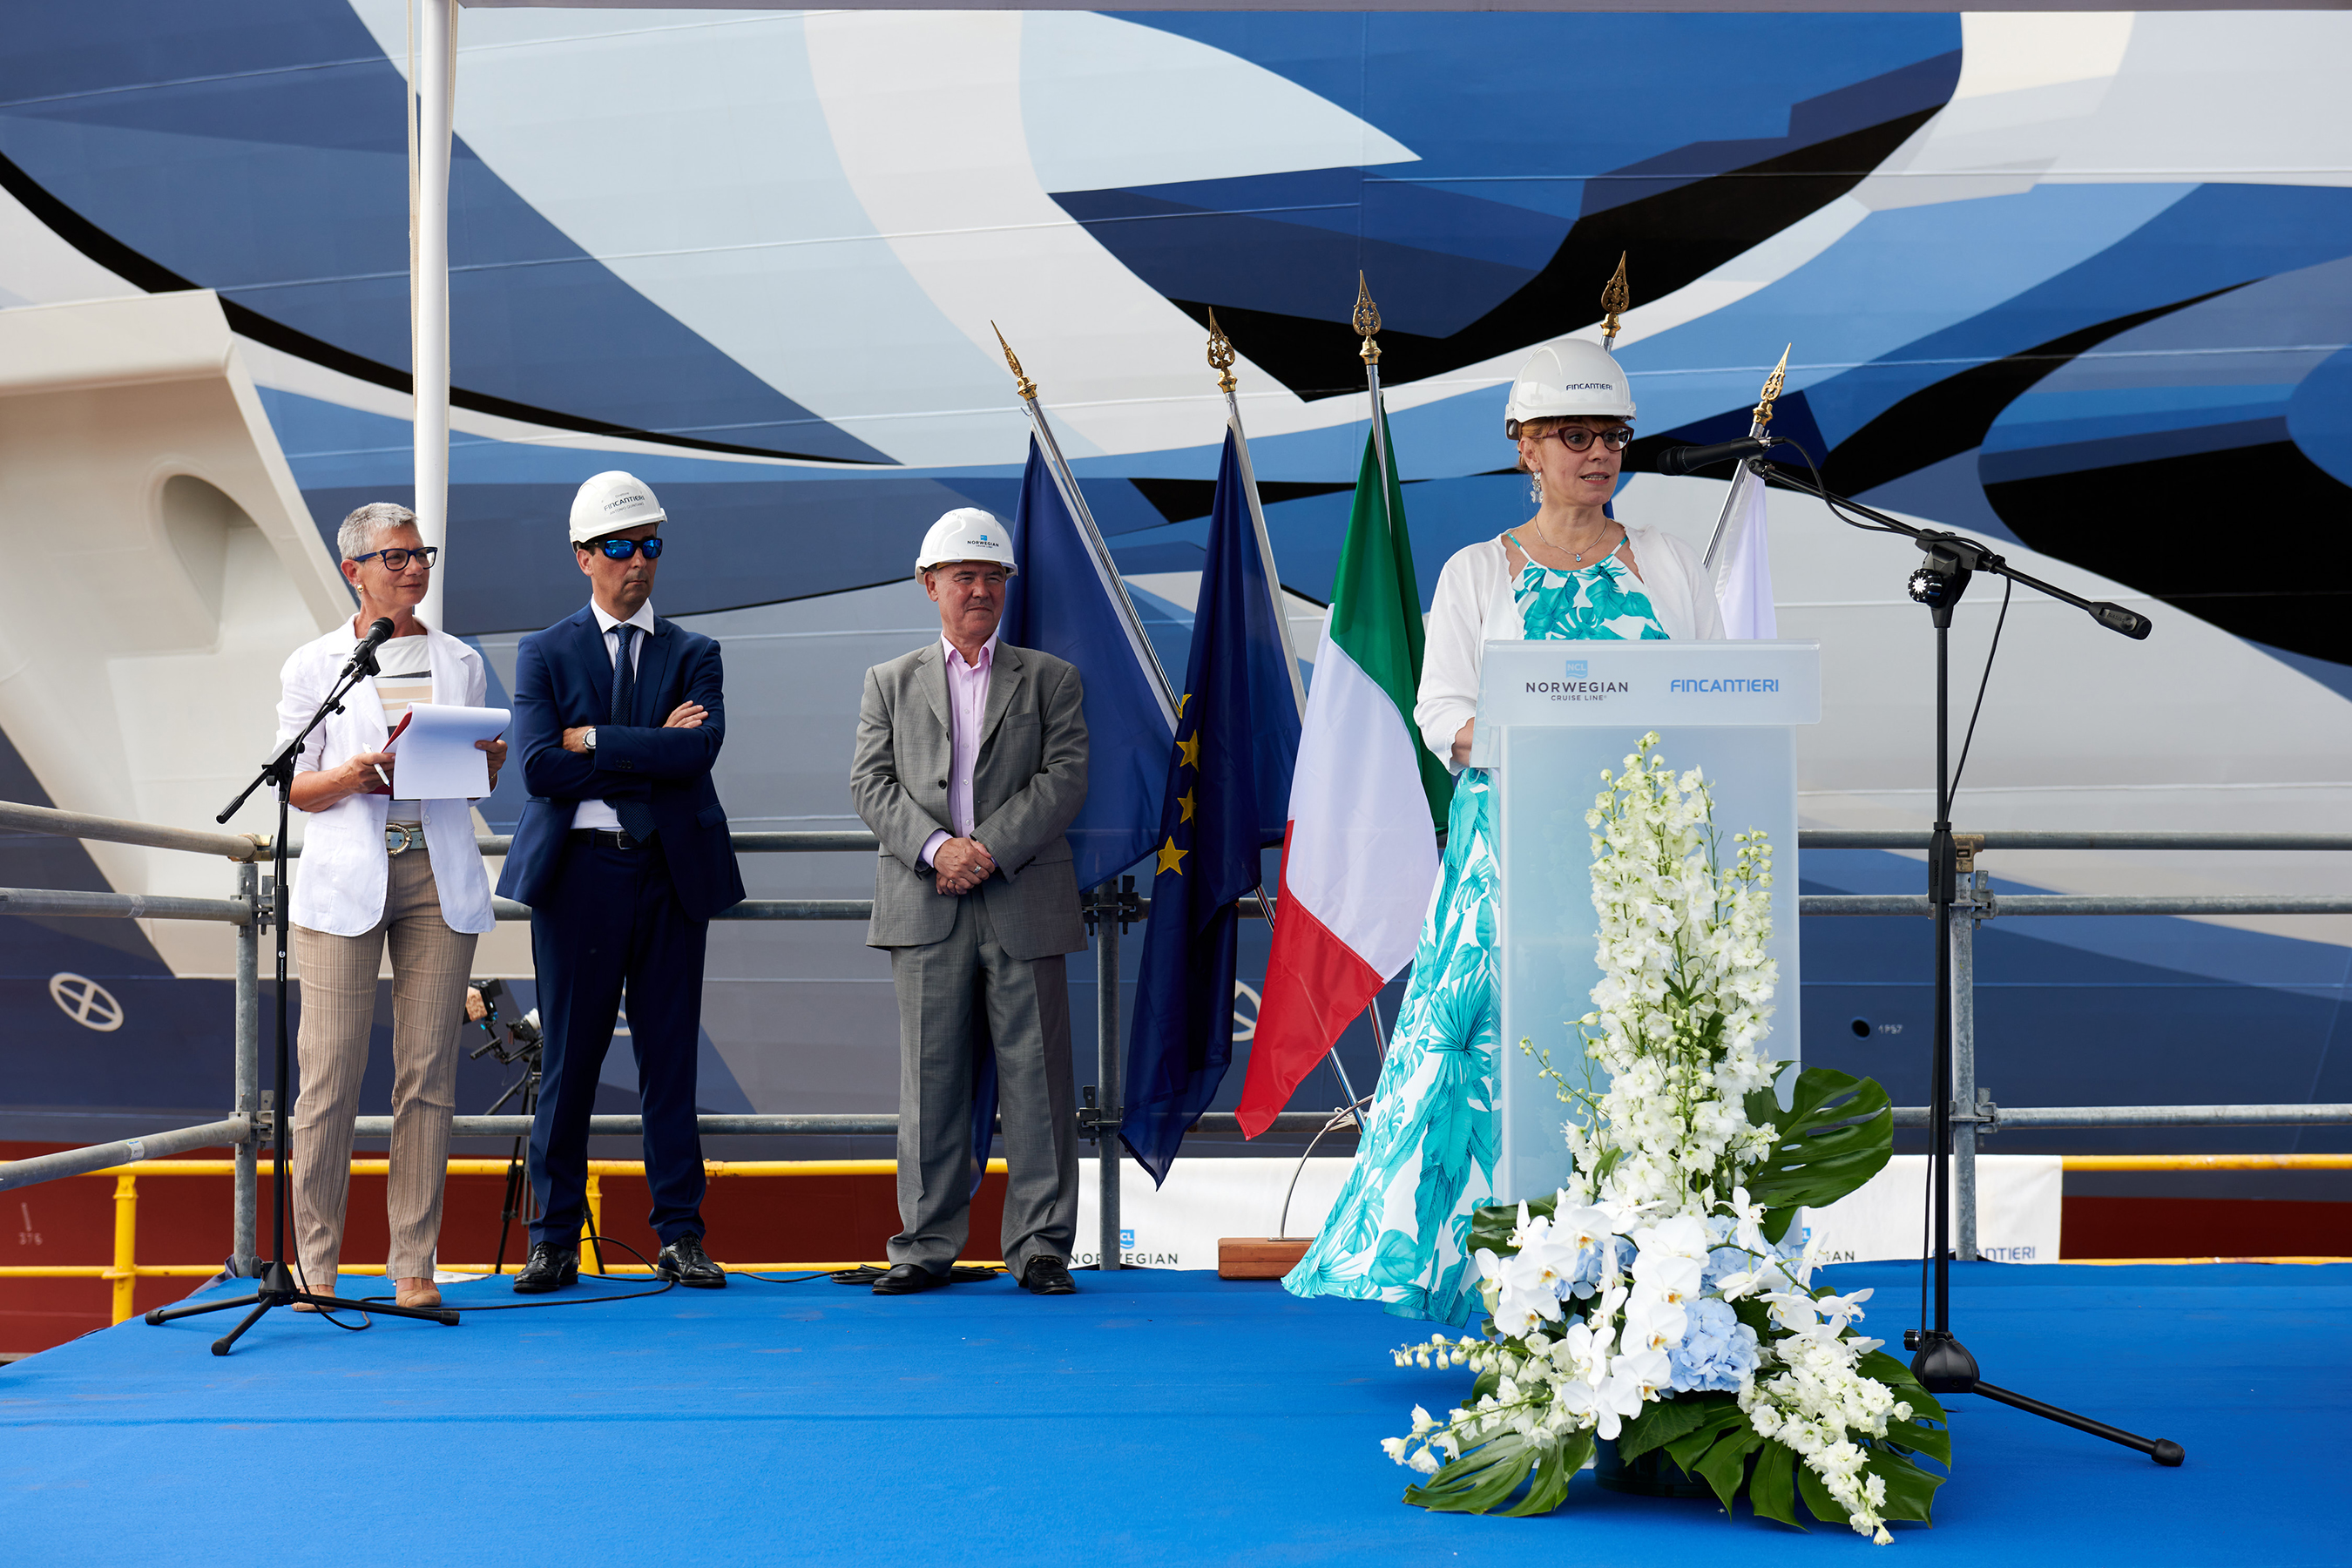 Tatiana Lazzarin, Head of Machinery Room Outfitting Technical Office of Fincantieri, was named the Shipyard Godmother during Norwegian Prima's float out and coin ceremony on Aug. 11, 2021 at the Fincantieri shipyard in Marghera, Italy. Photo by © Filippo Vinardi